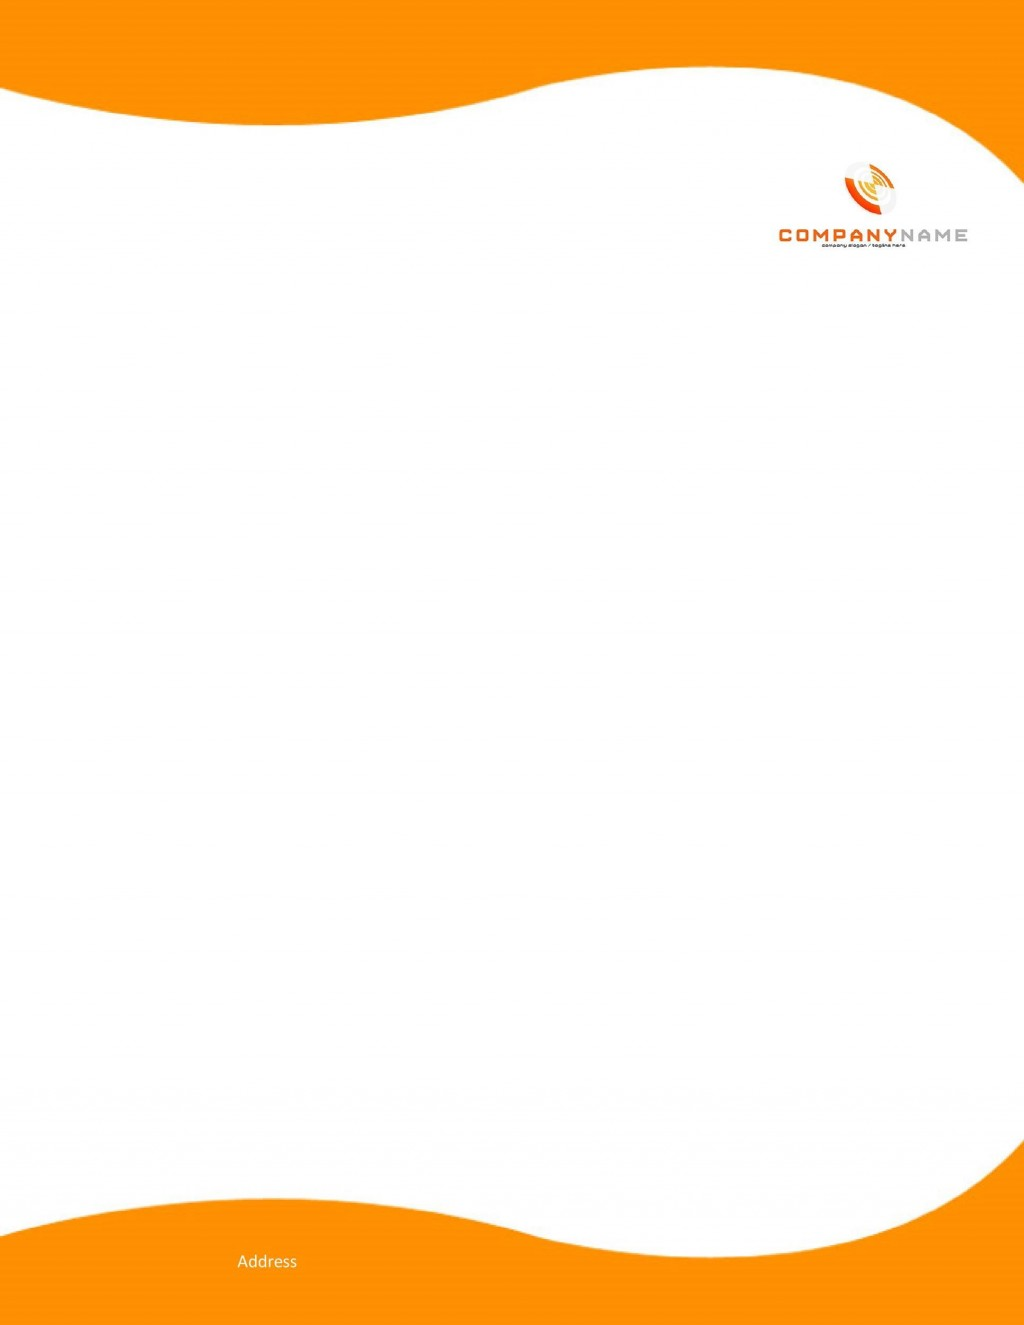 007 Unusual Letterhead Sample In Word Format Free Download Highest Quality  Design Template PsdLarge